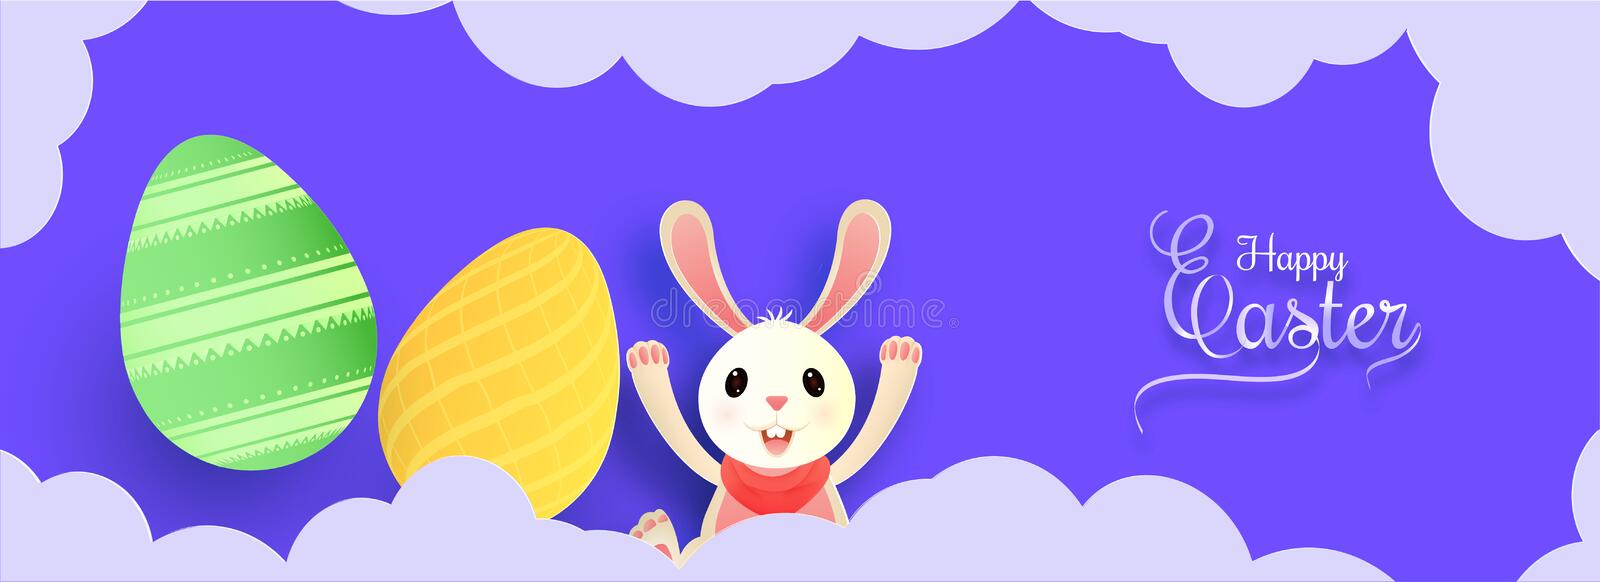 Header banner or poster design with illustration of easter egg, bunny on sky view background for Easter Party. royalty free illustration